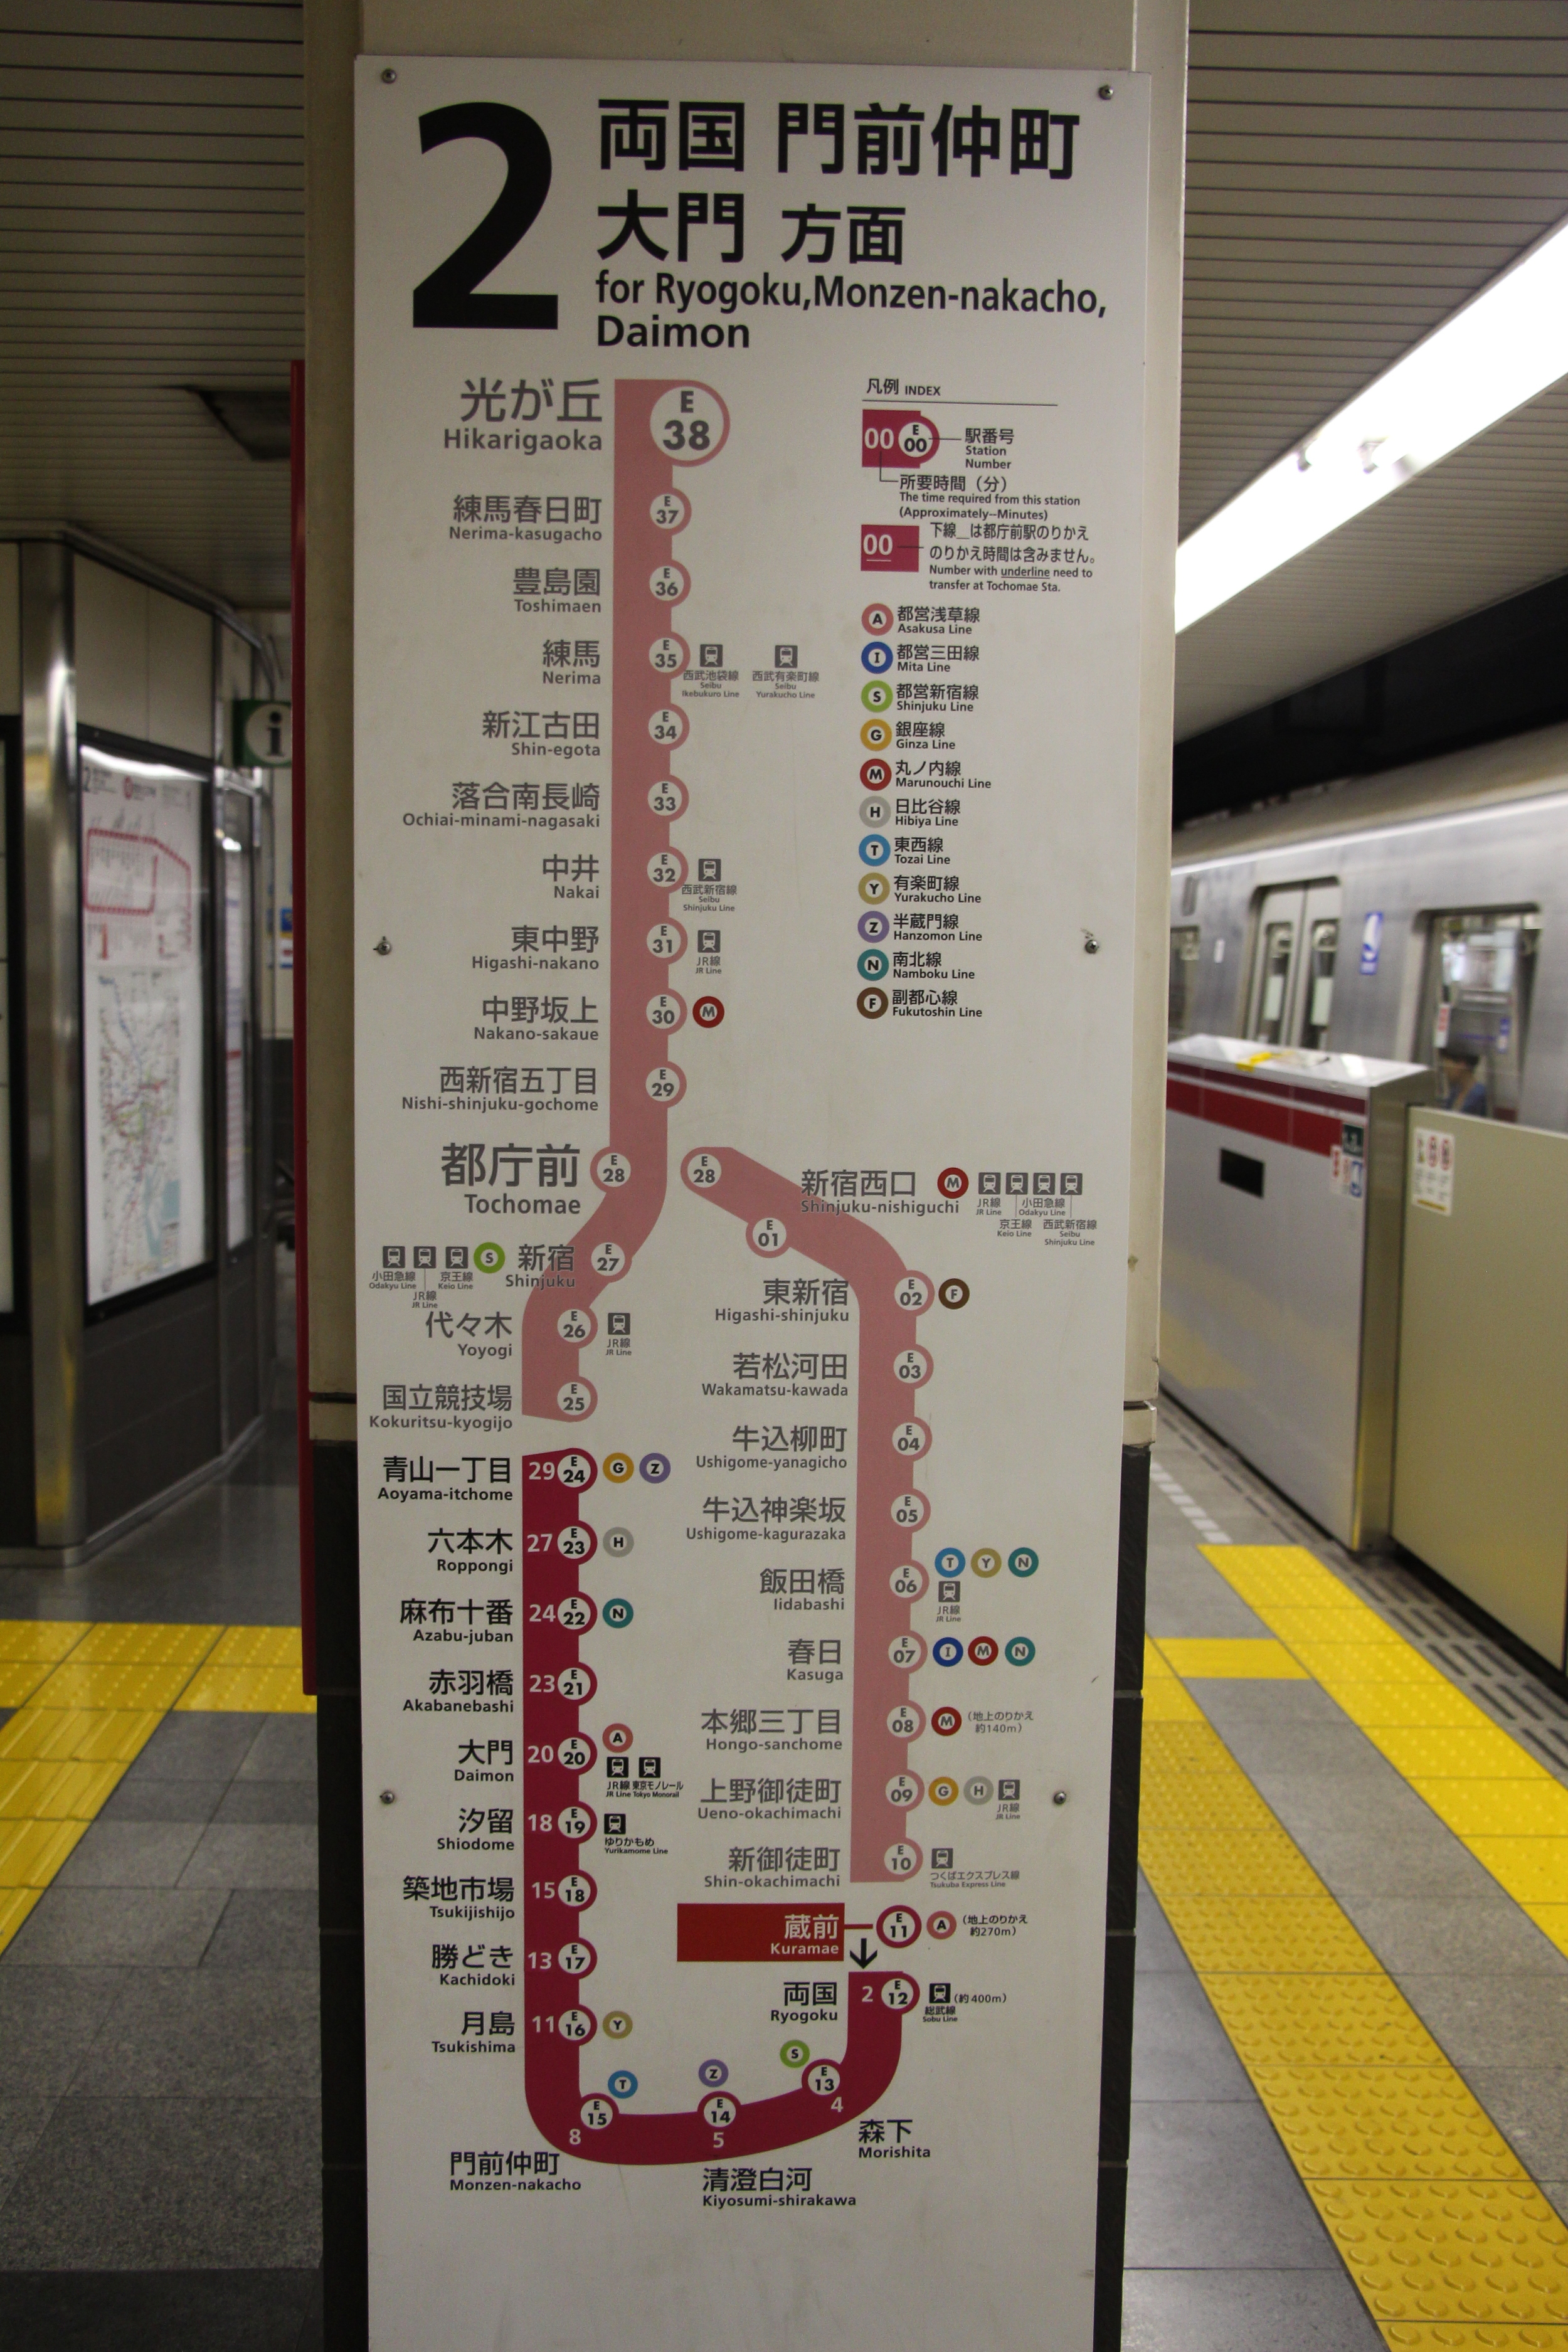 One of the many pillars in a station that was used to display information.